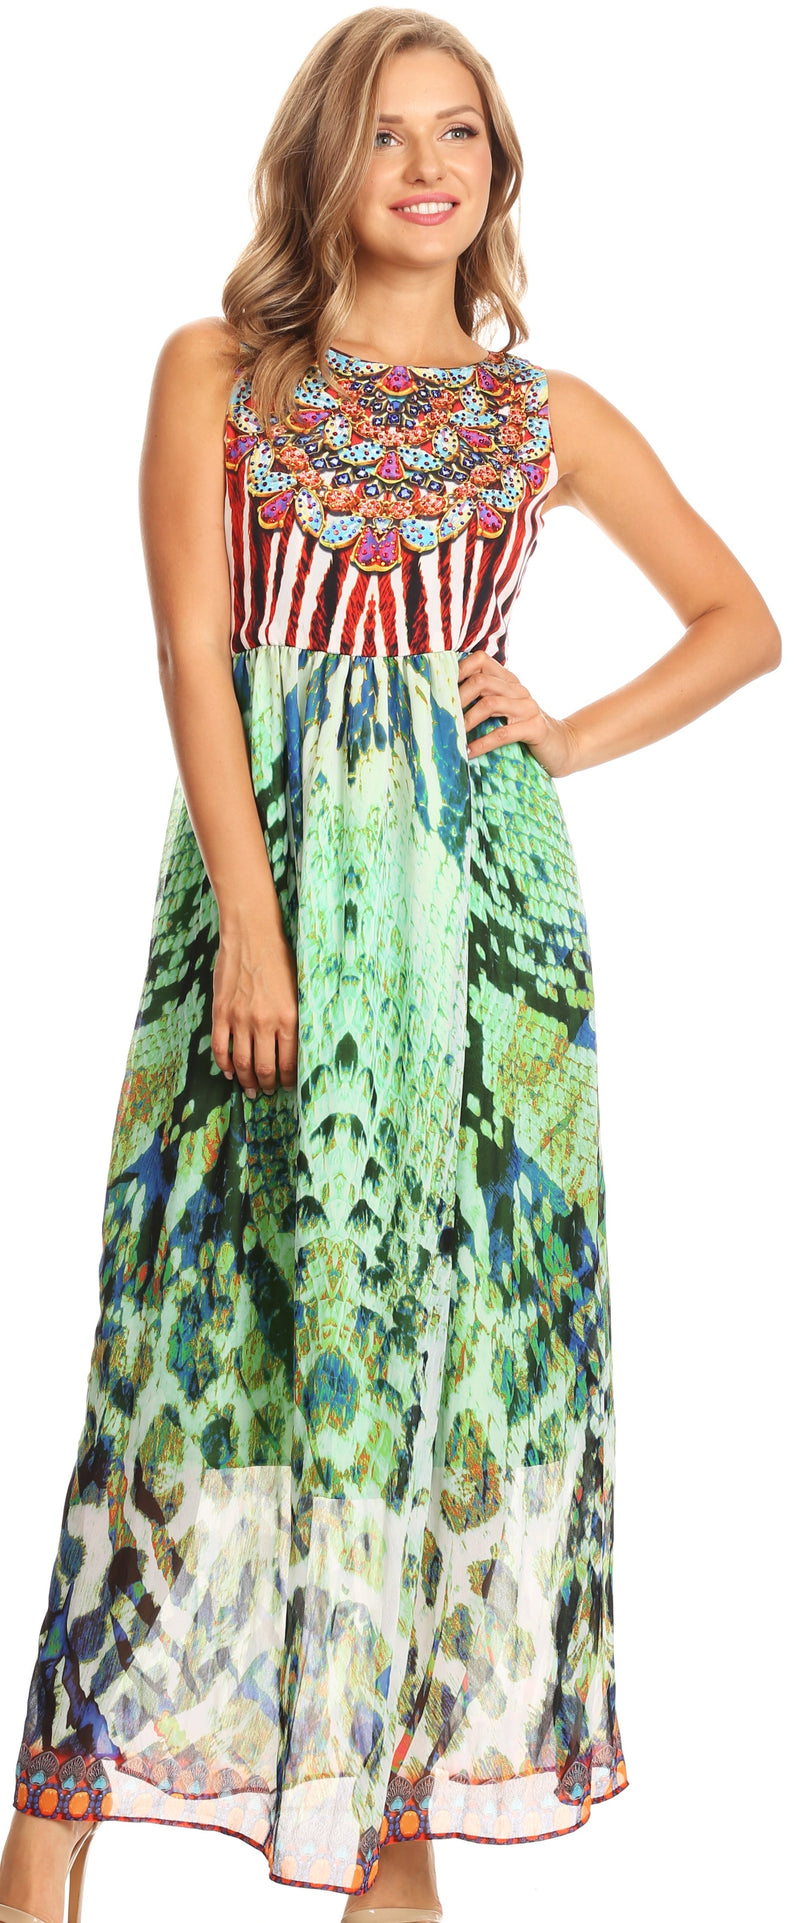 Sakkas Afia Animal Print Empire Waist sleeveless Long Dress with Embellishment